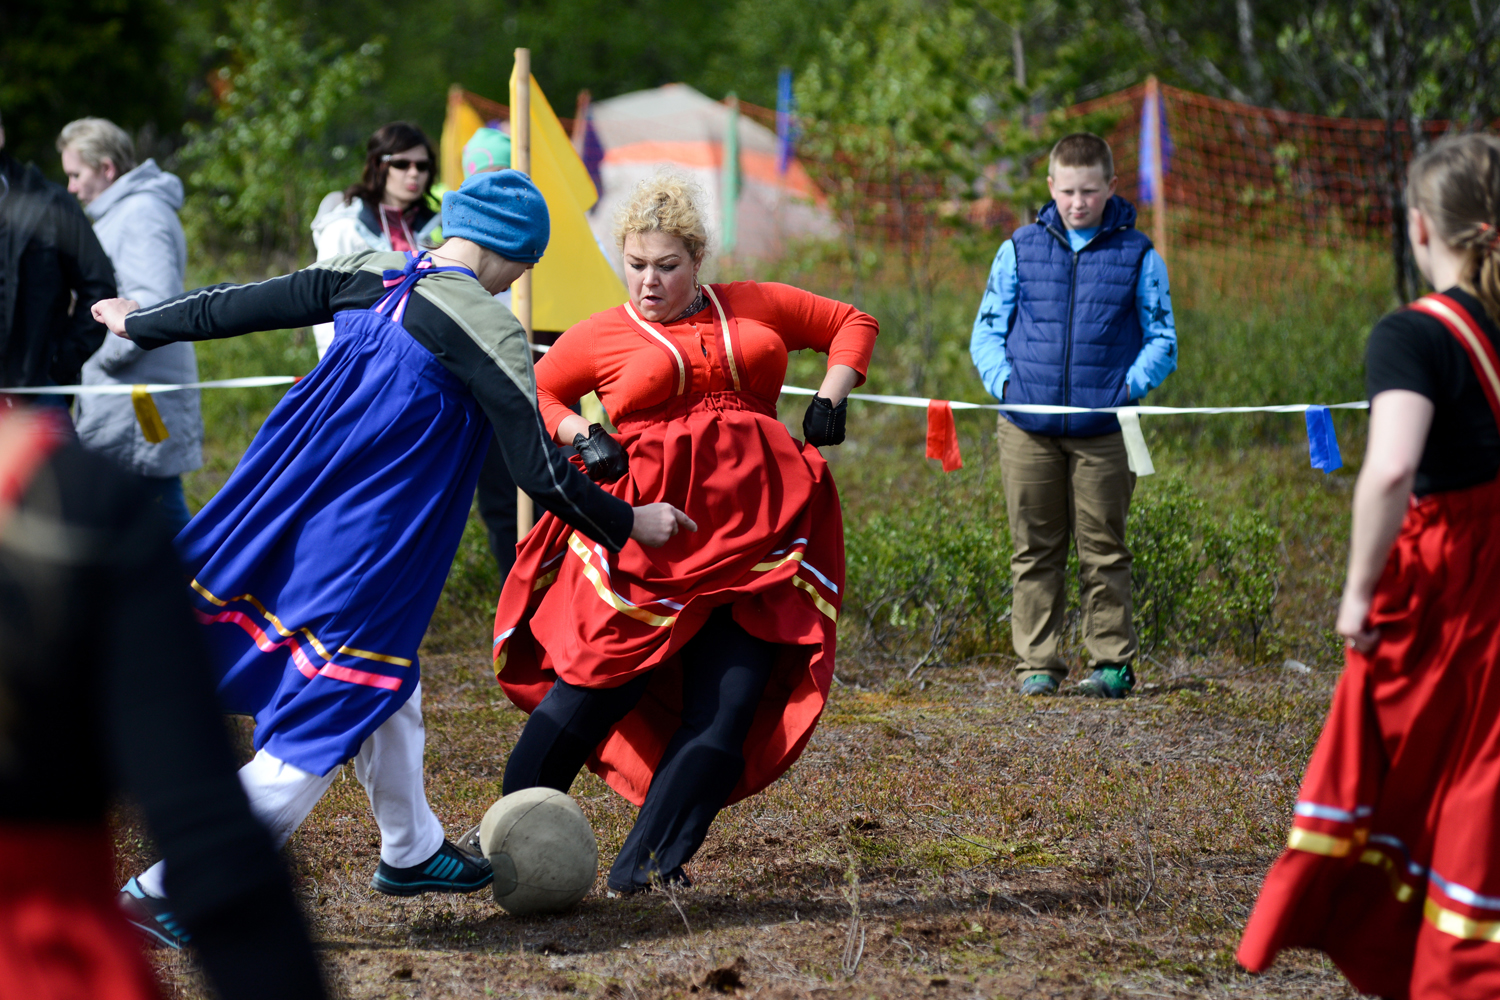 And whereas in normal soccer the goalkeeper can cover the ball with their body, in Saami football the goalkeeper protects the ball by covering it with the hem of the skirt.